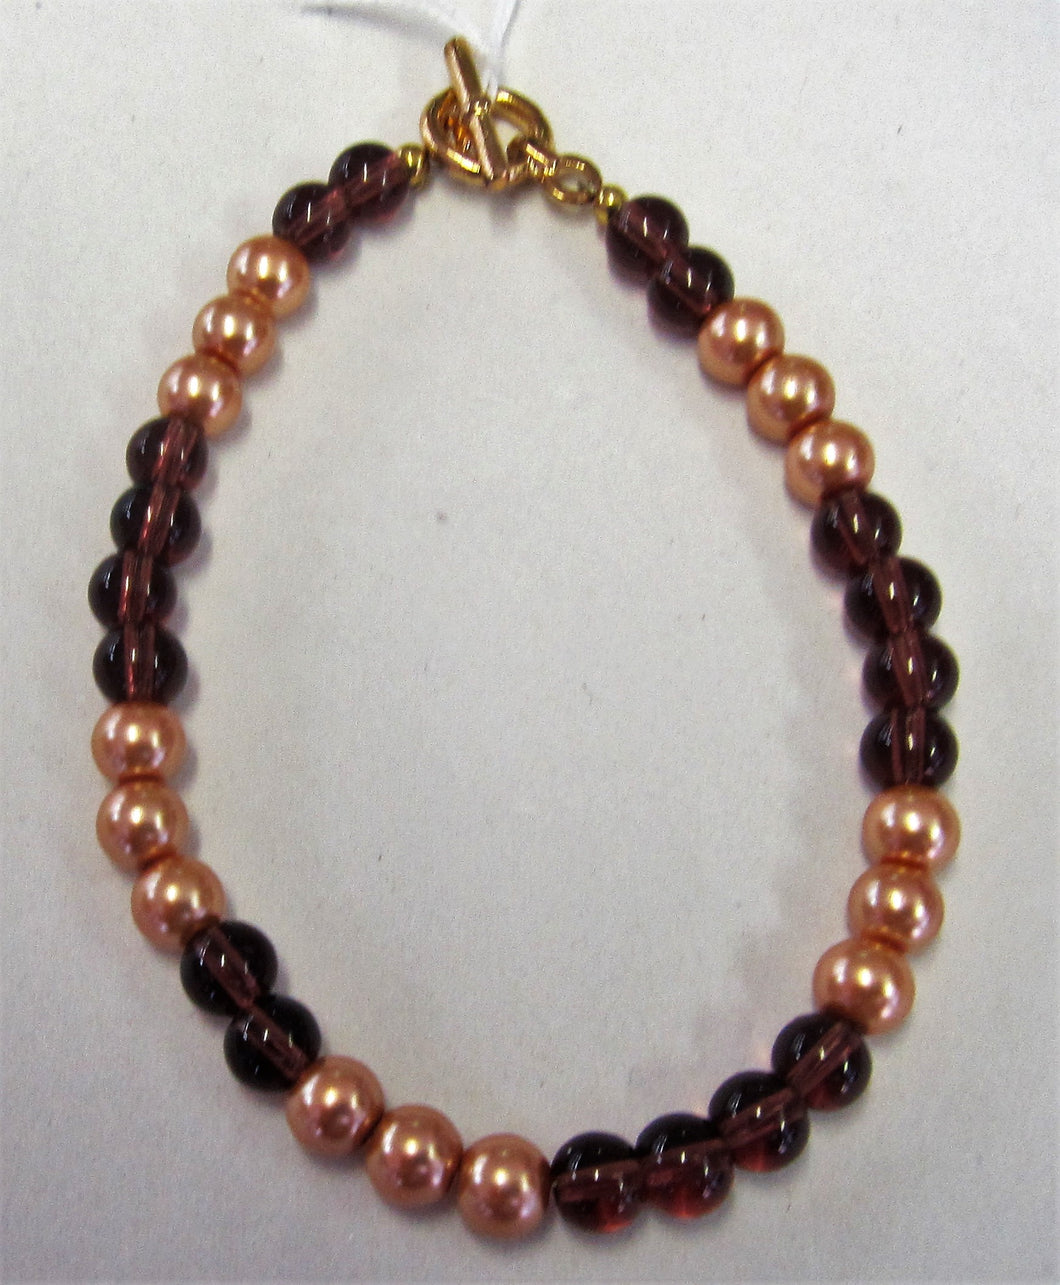 Beaded bracelet - Beautiful handcrafted with gold and brown beads